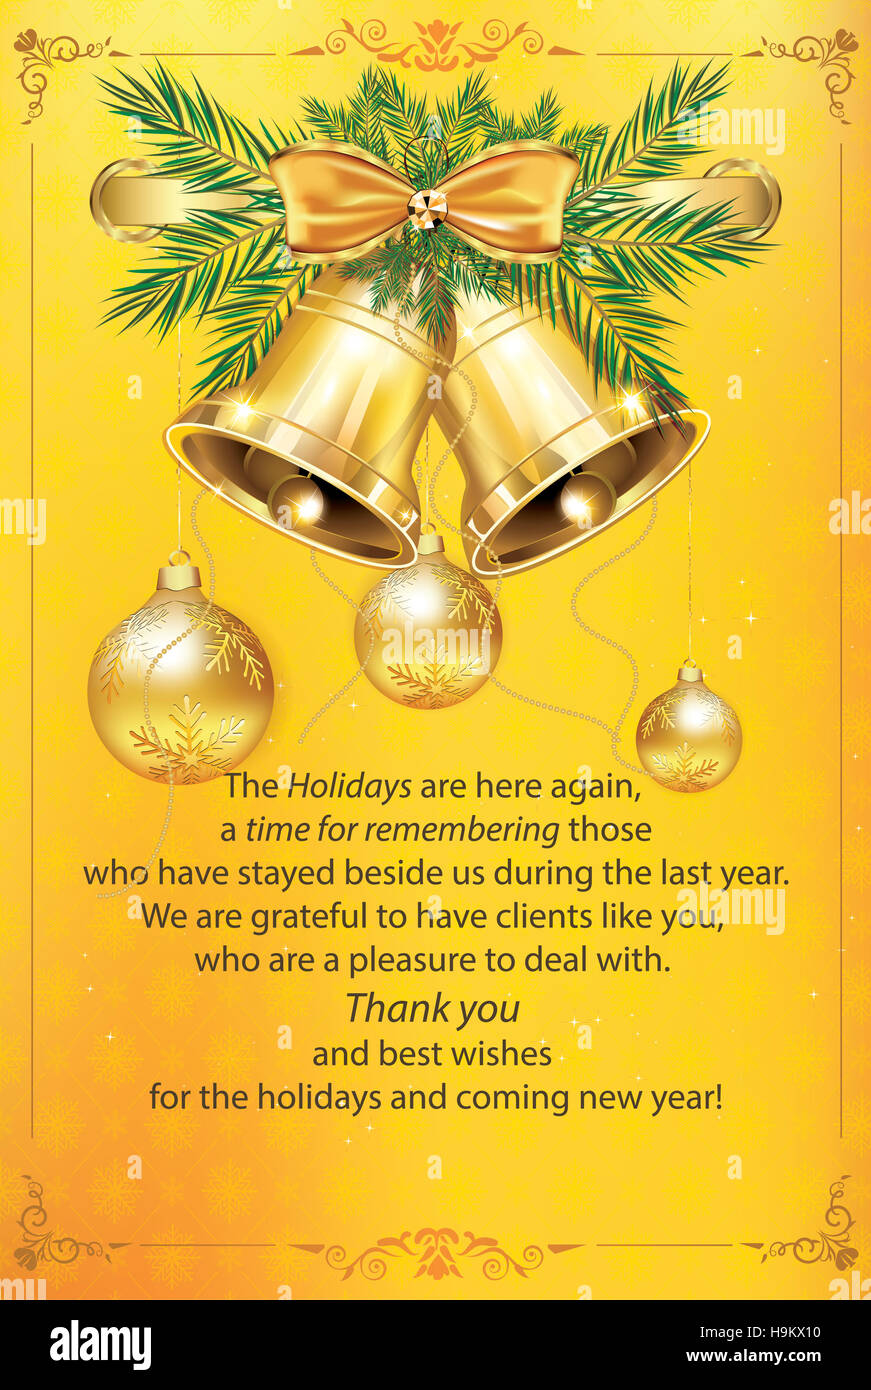 Greeting card for clients stock photos greeting card for clients business greeting card for christmas and new year especially created for companies that want to reheart Choice Image